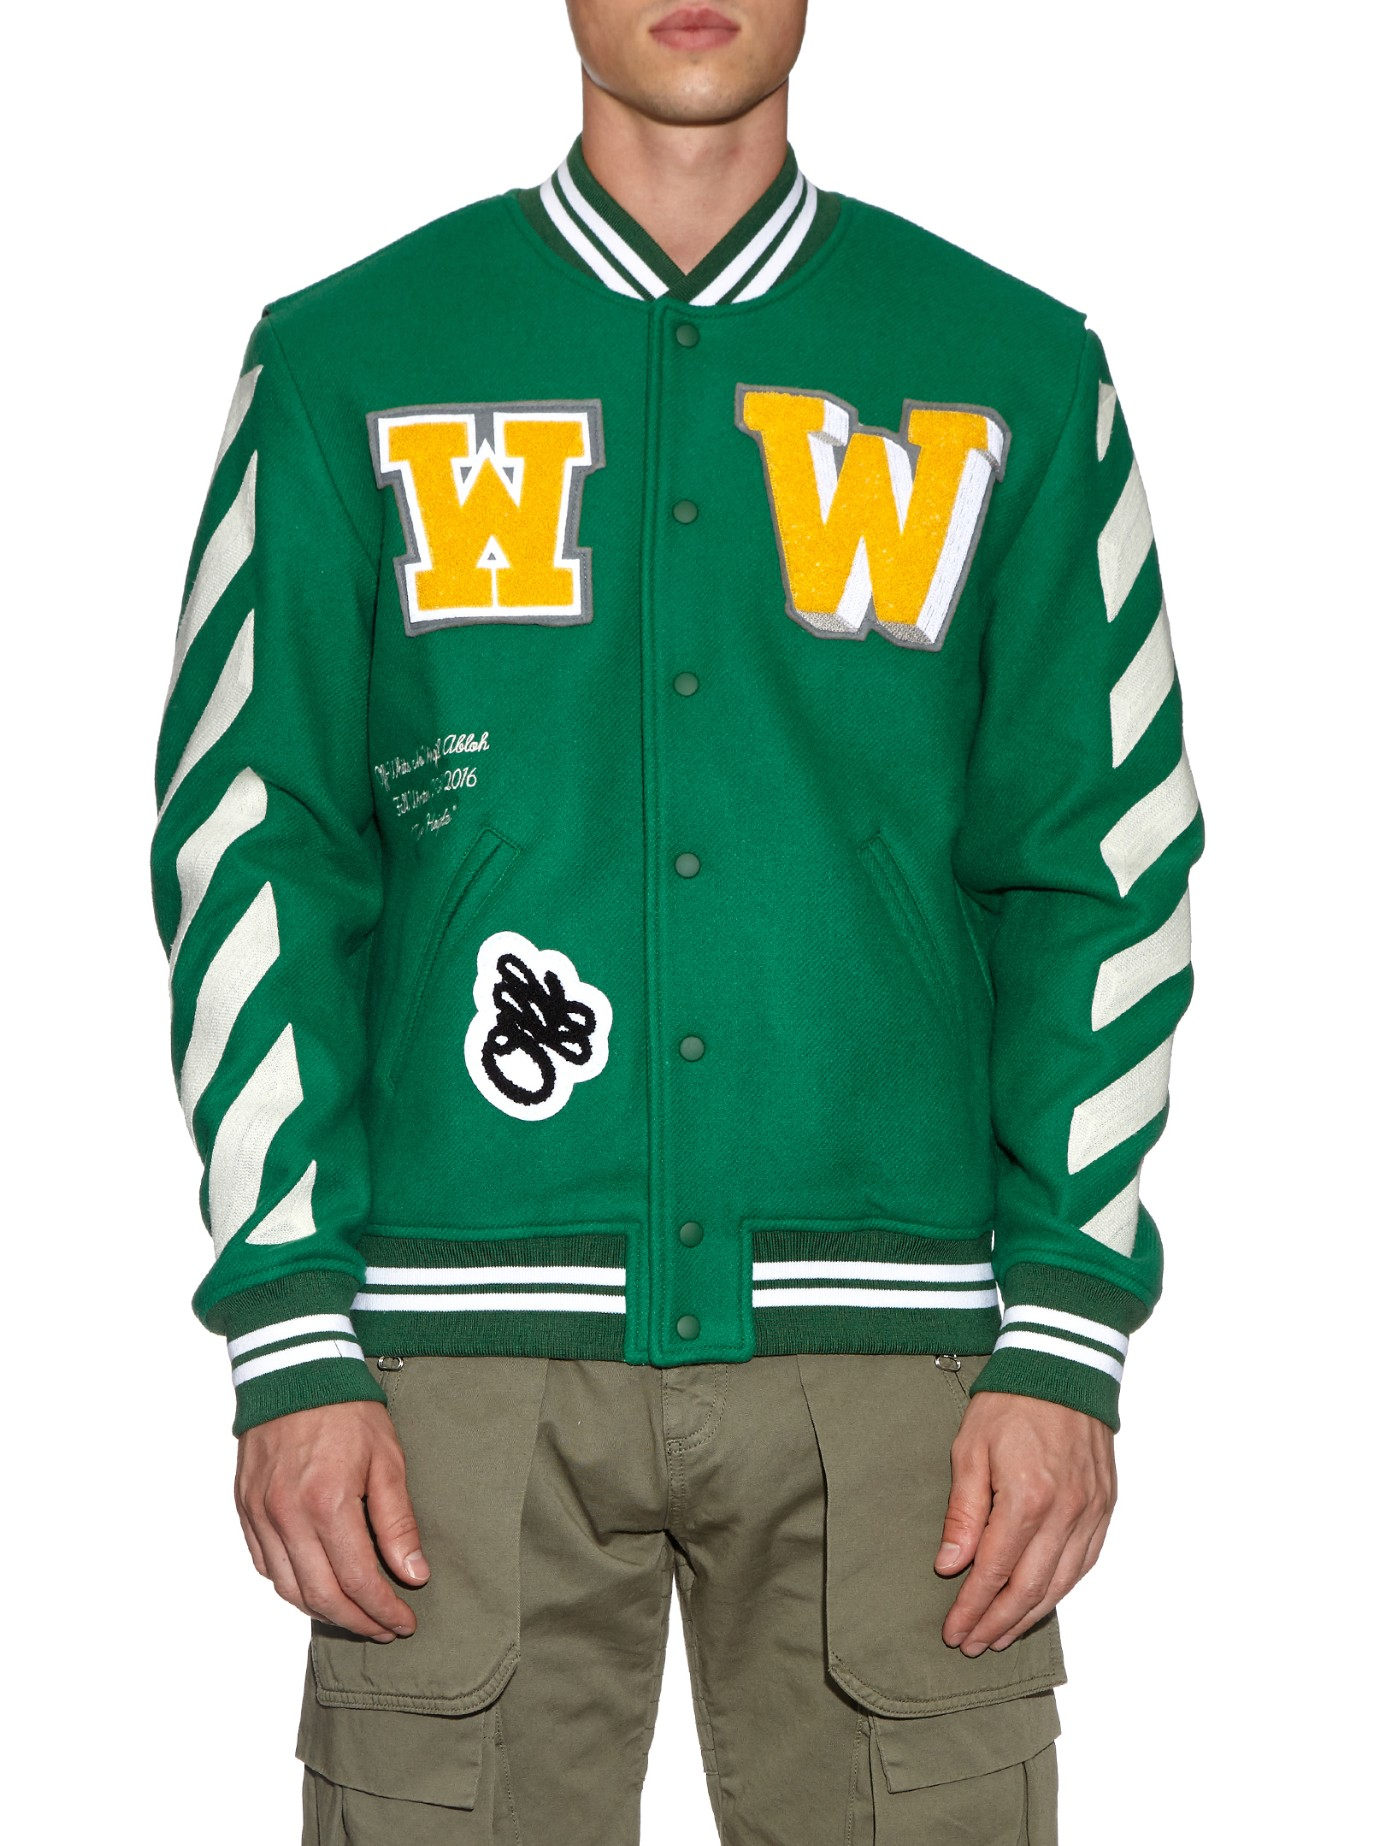 Off-White c/o Virgil Abloh Letterman Wool-blend Varsity Jacket in Green for Men